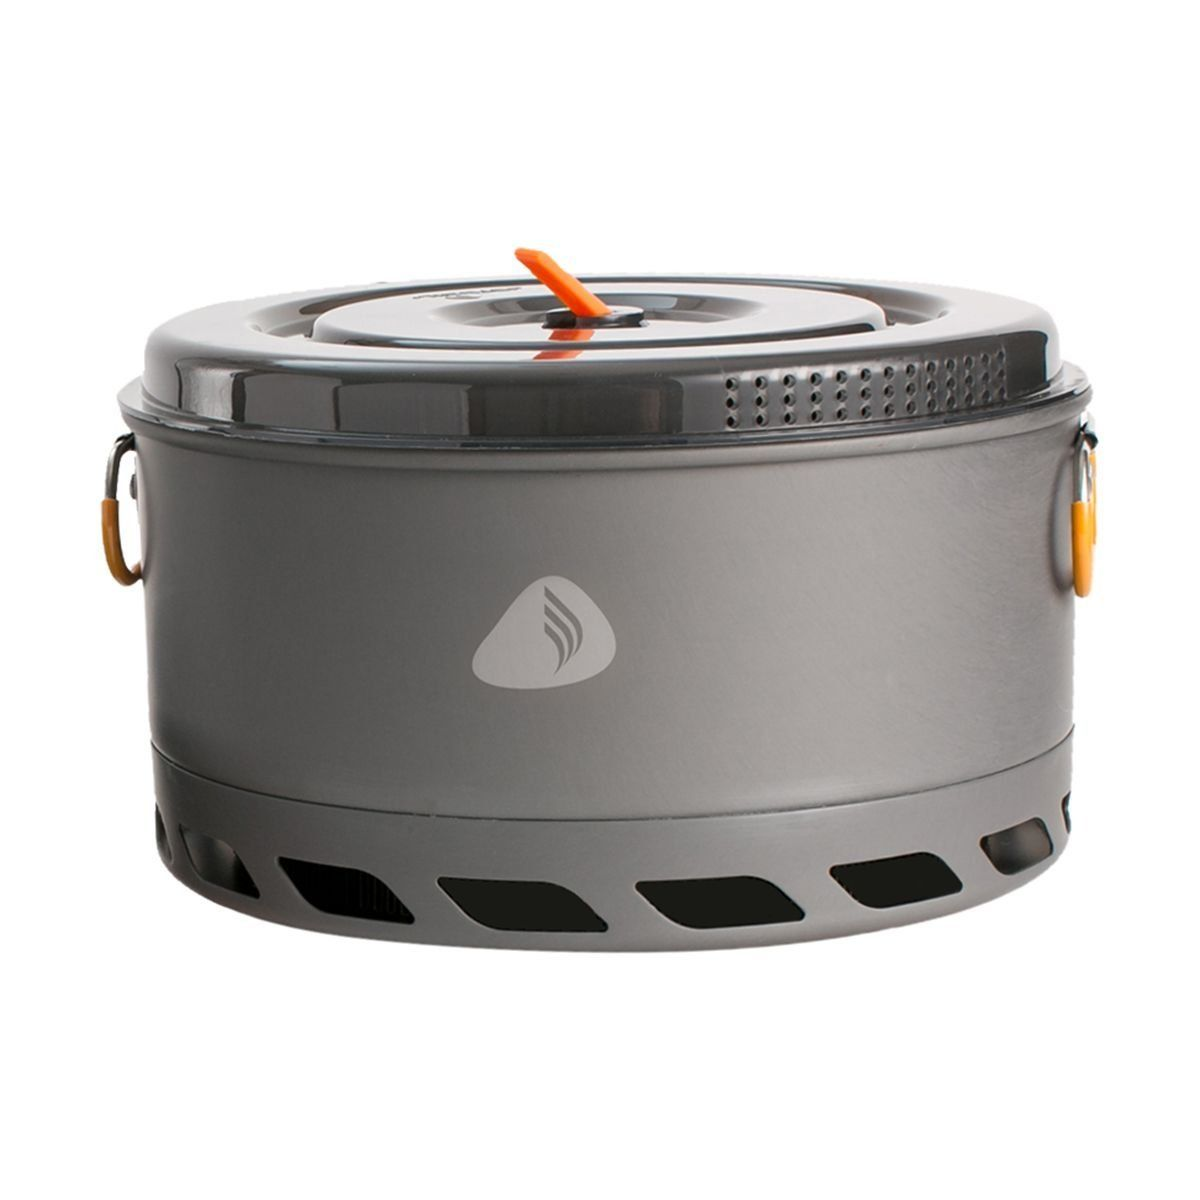 Jetboil Flux Cooking Pot Quickly View This Special Outdoor Item Click The Image Camping Equipment